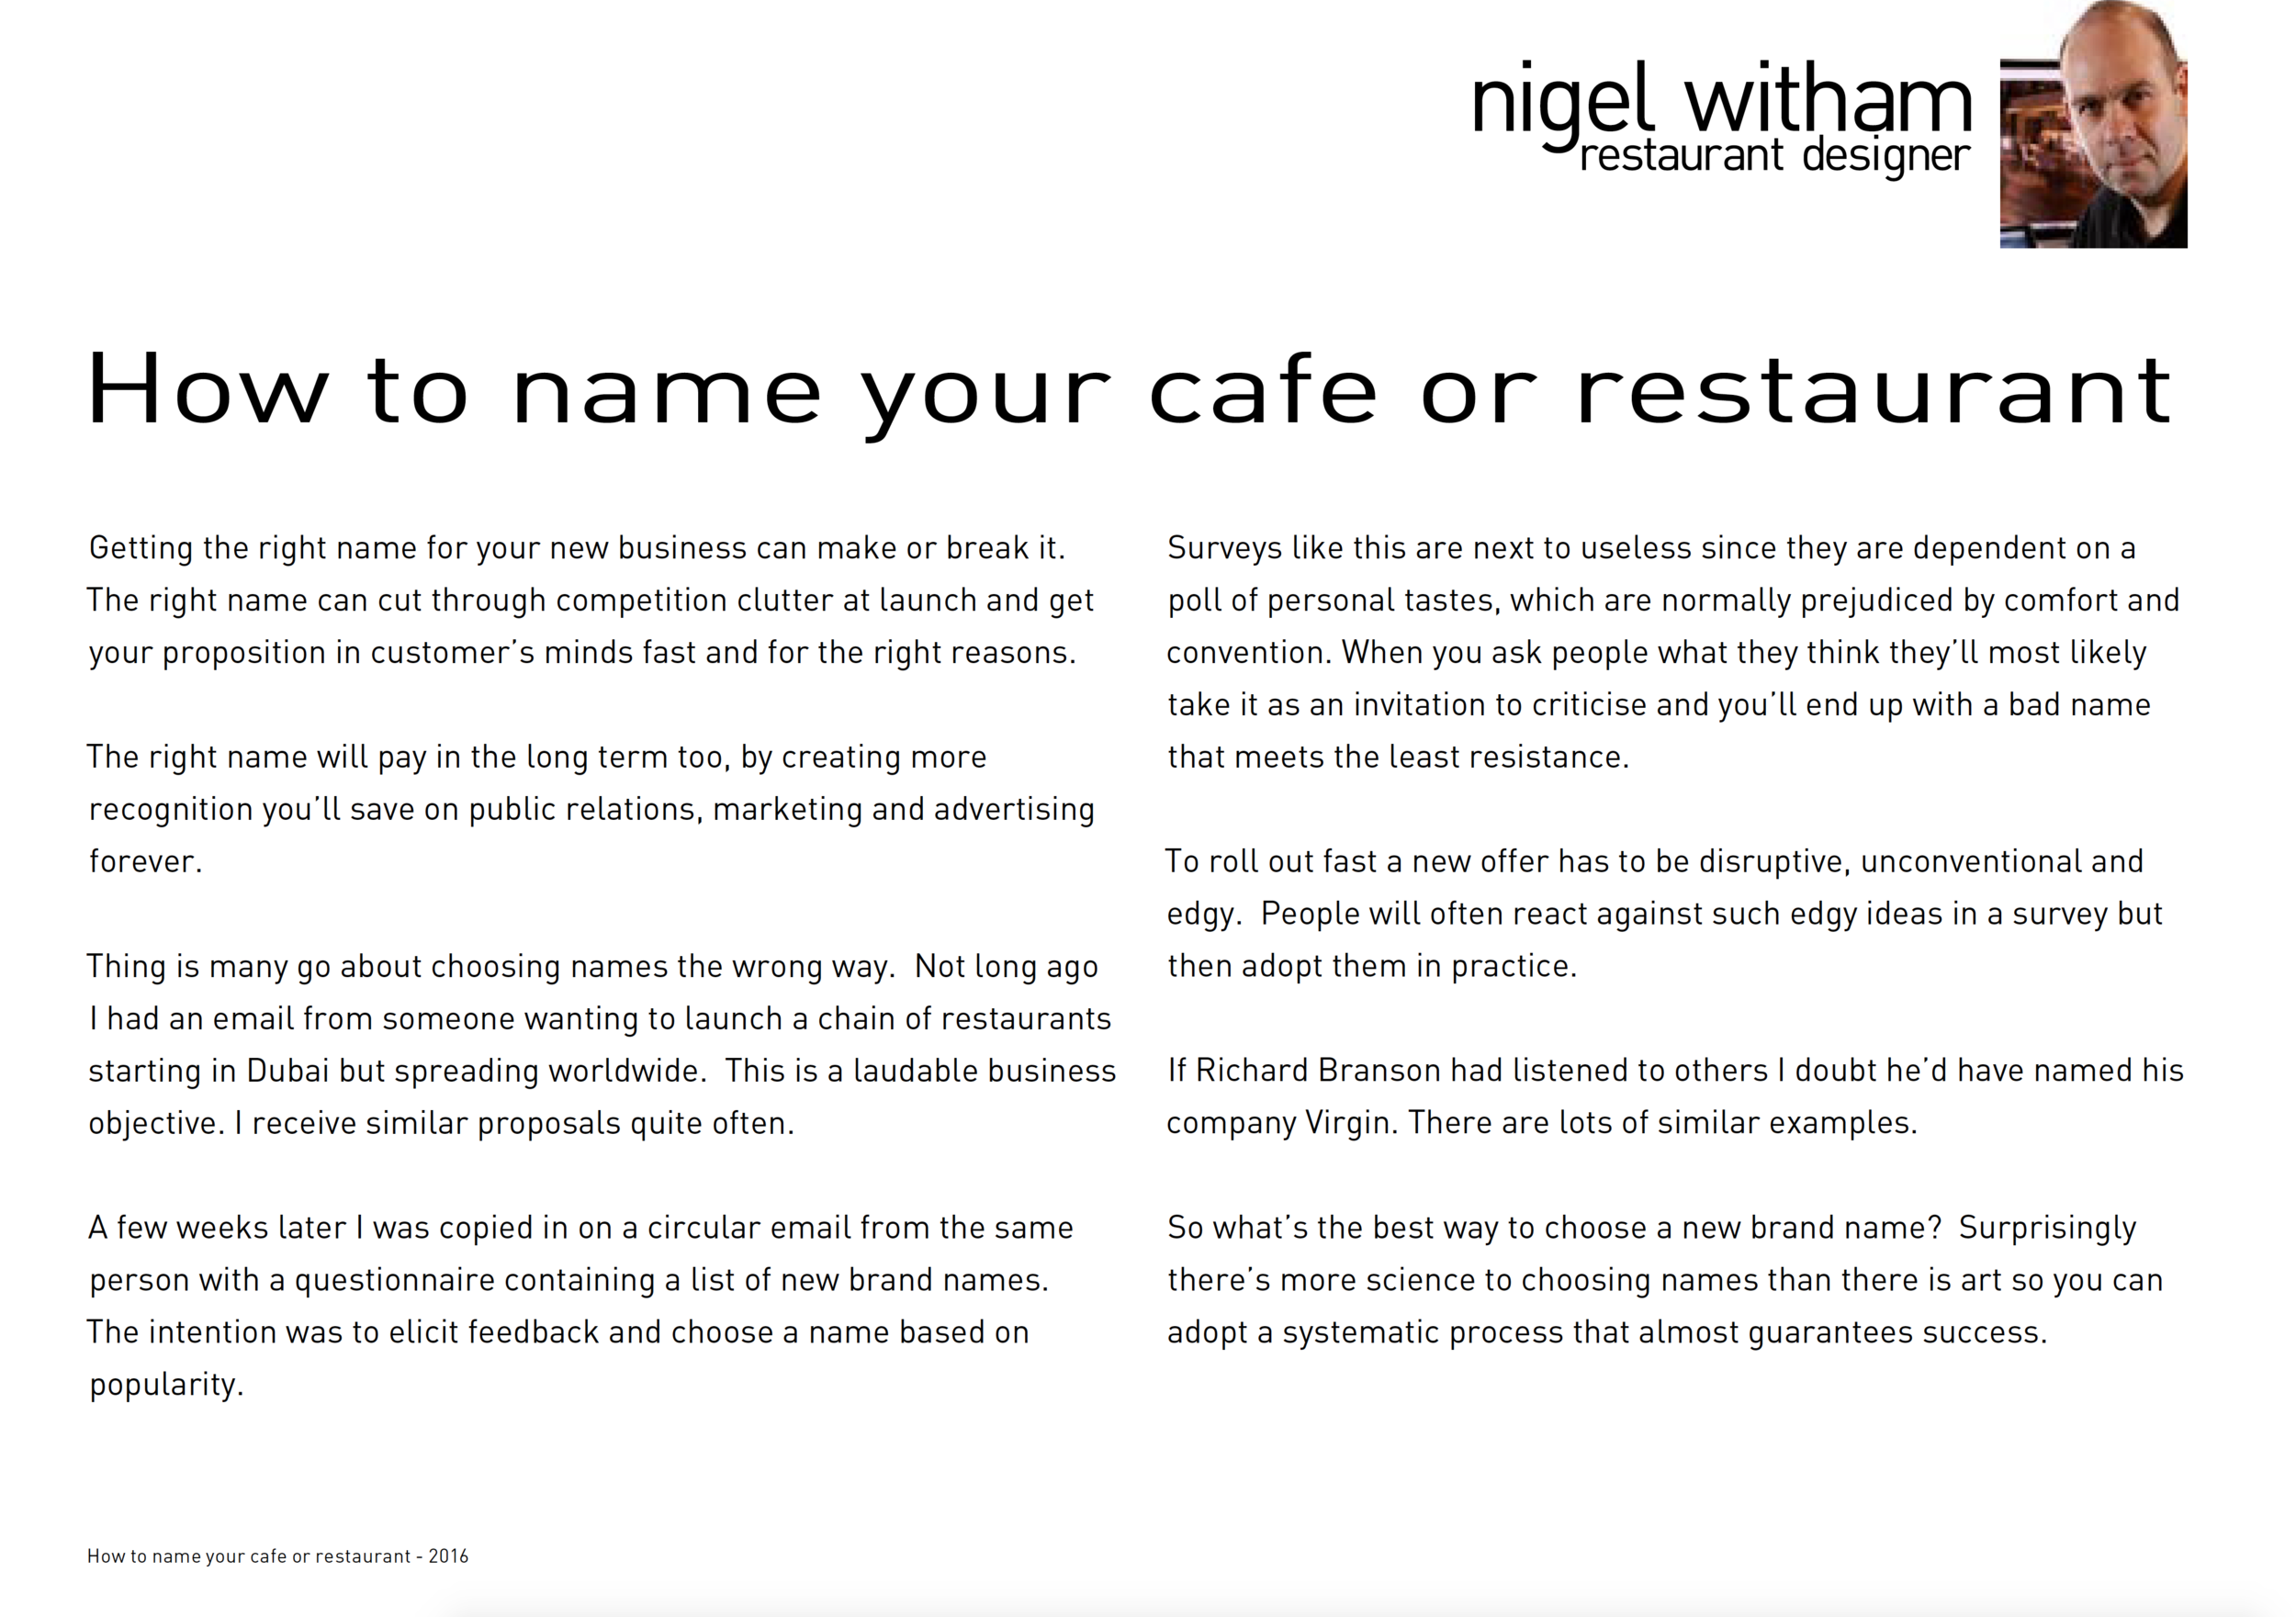 How To Name Your Cafe or Restaurant